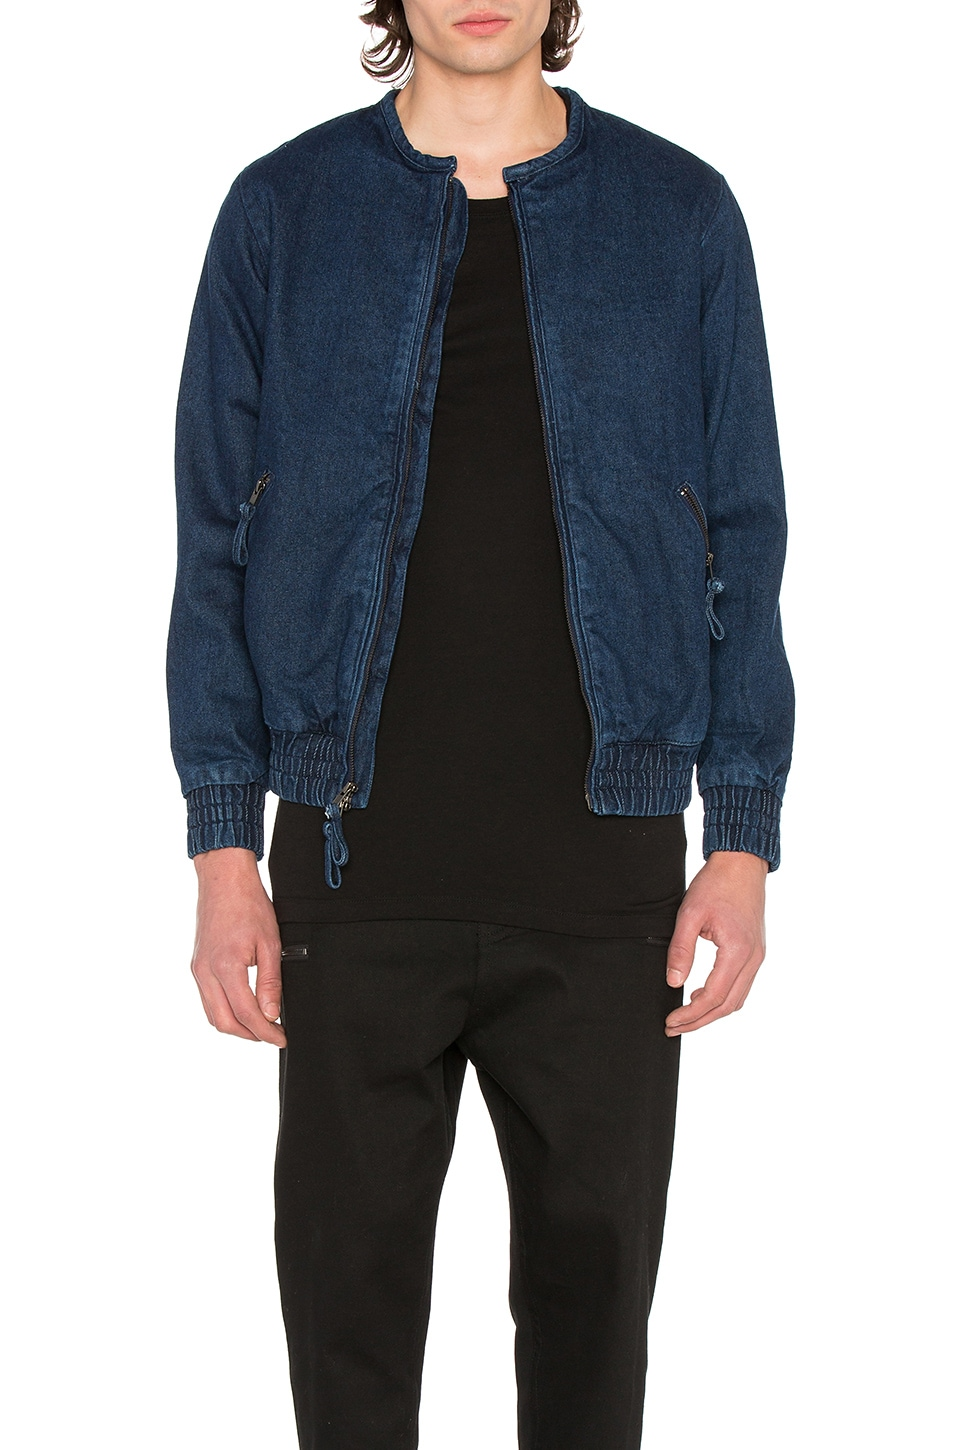 Adriano Jacket by Publish